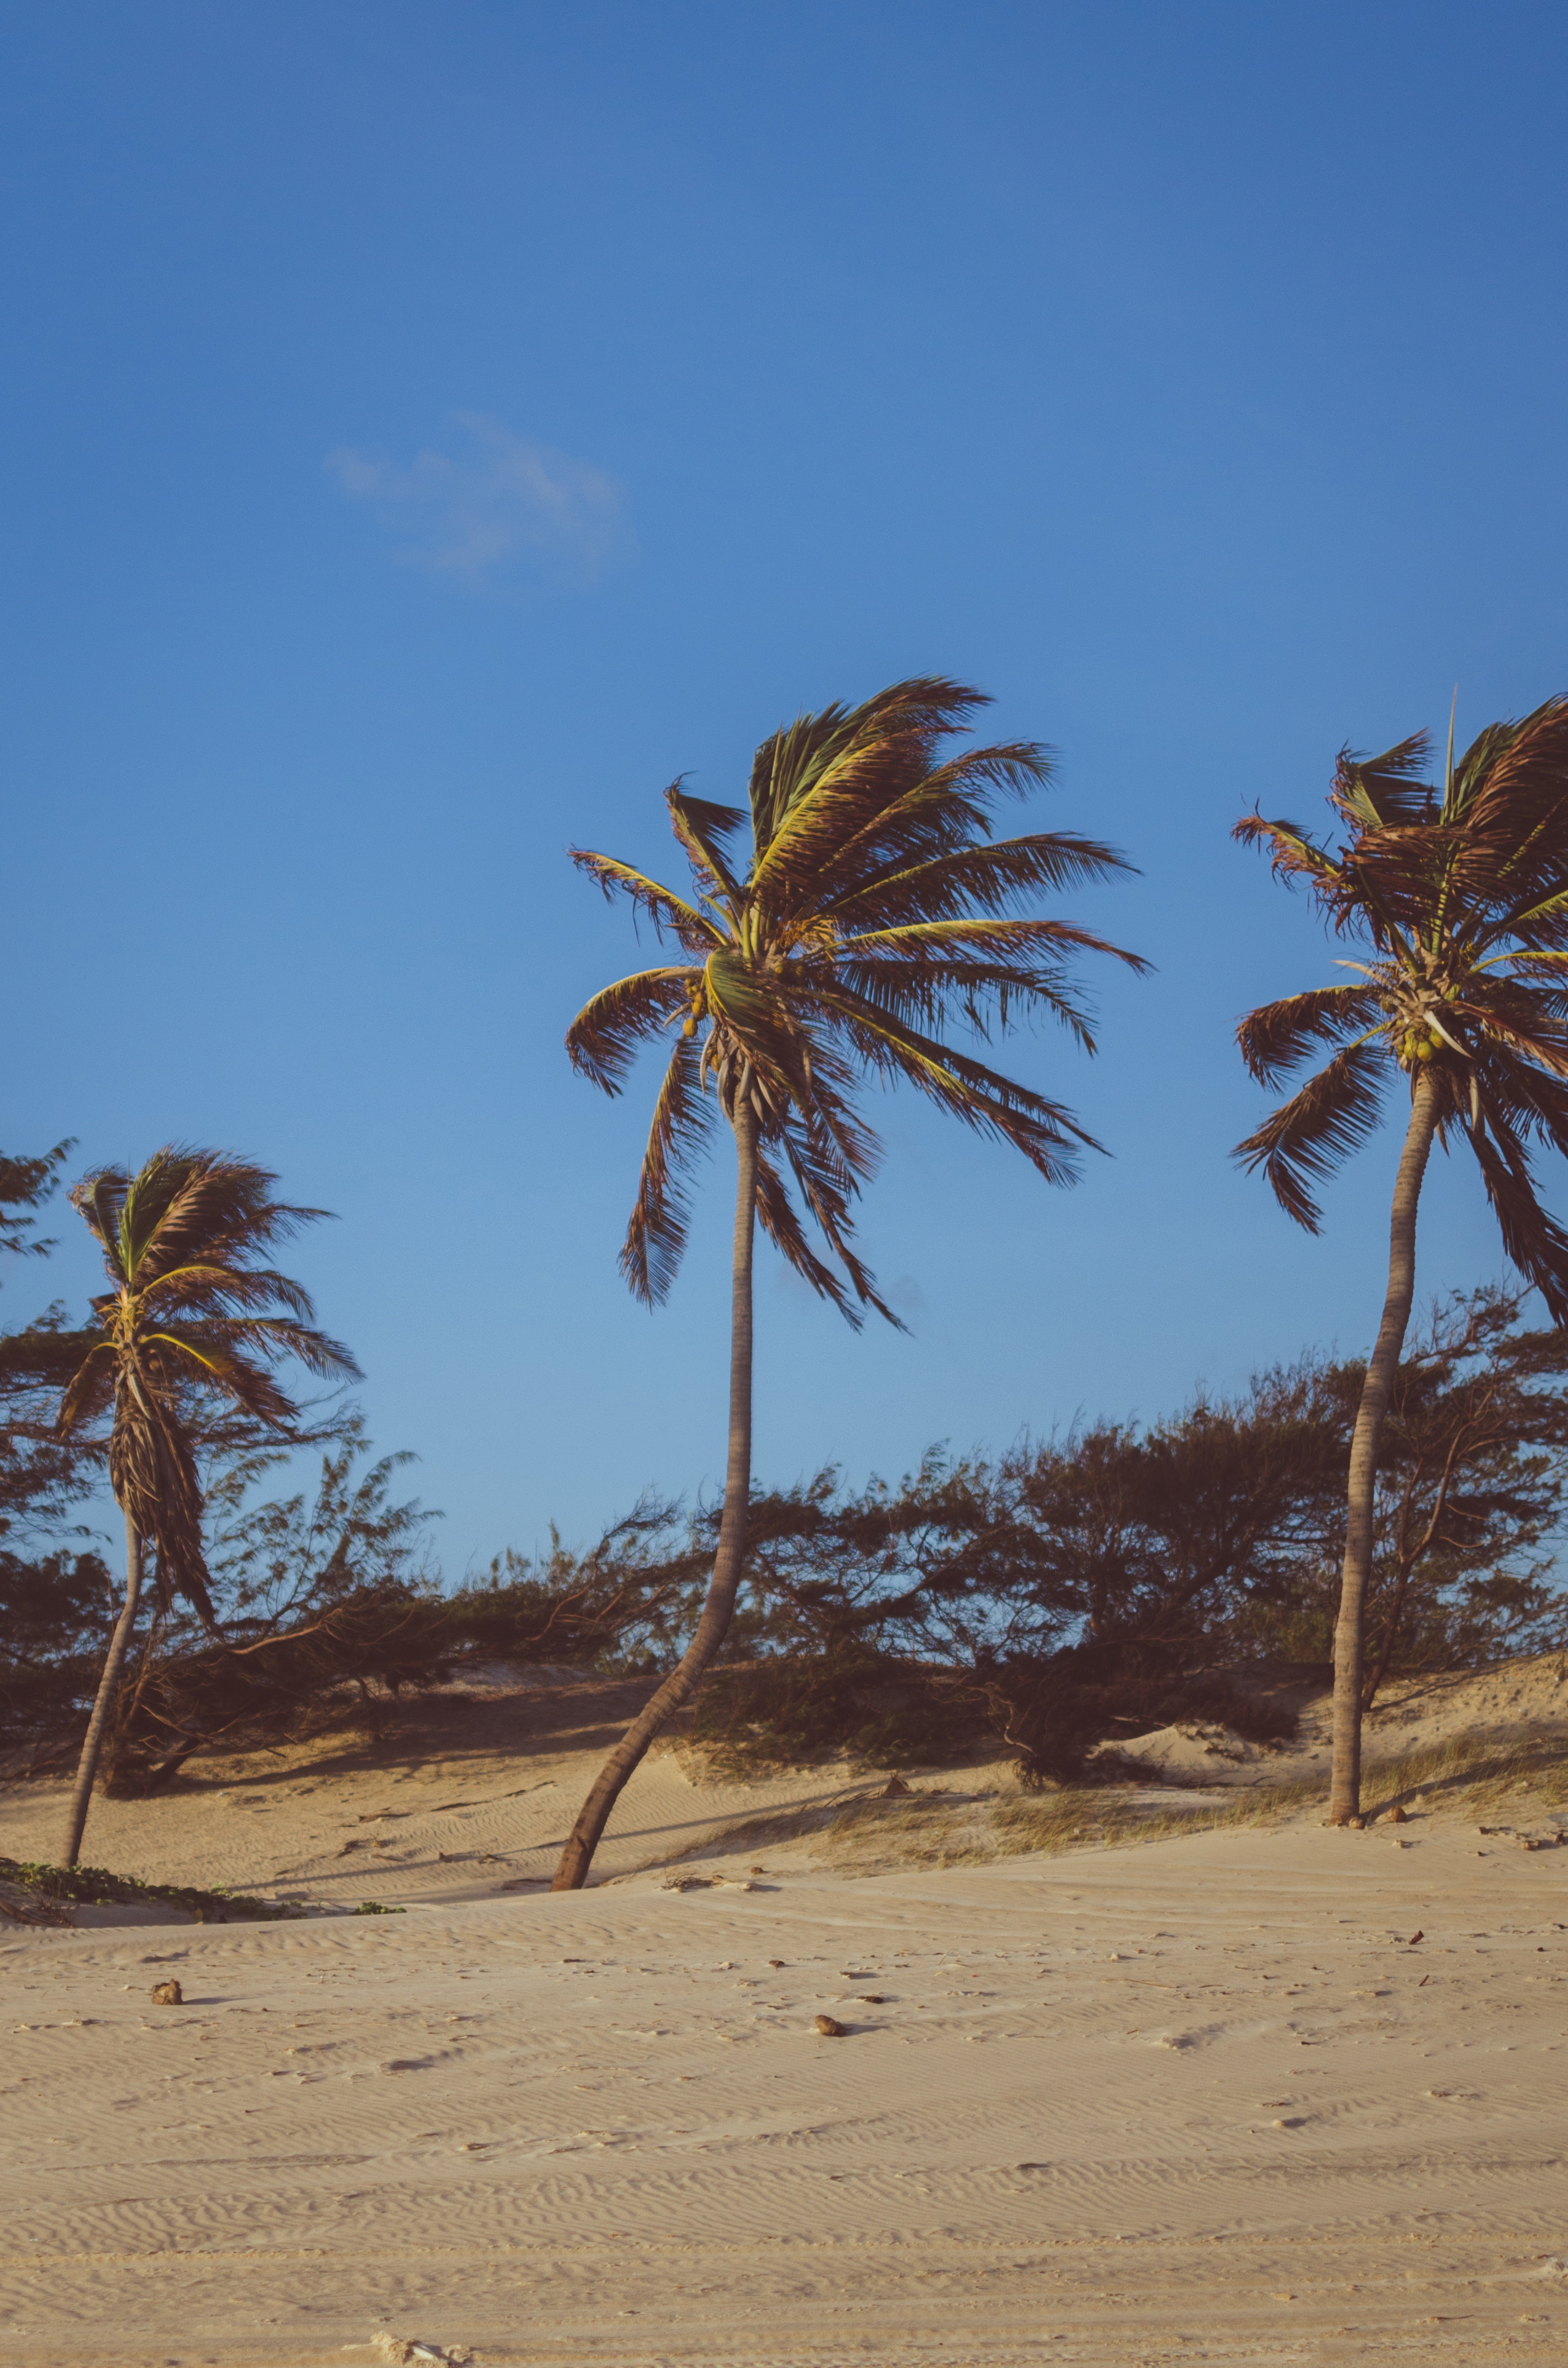 Coconut Trees on Brown Soil Under Blue Sky, Beach, Seascape, Wind, Water, HQ Photo